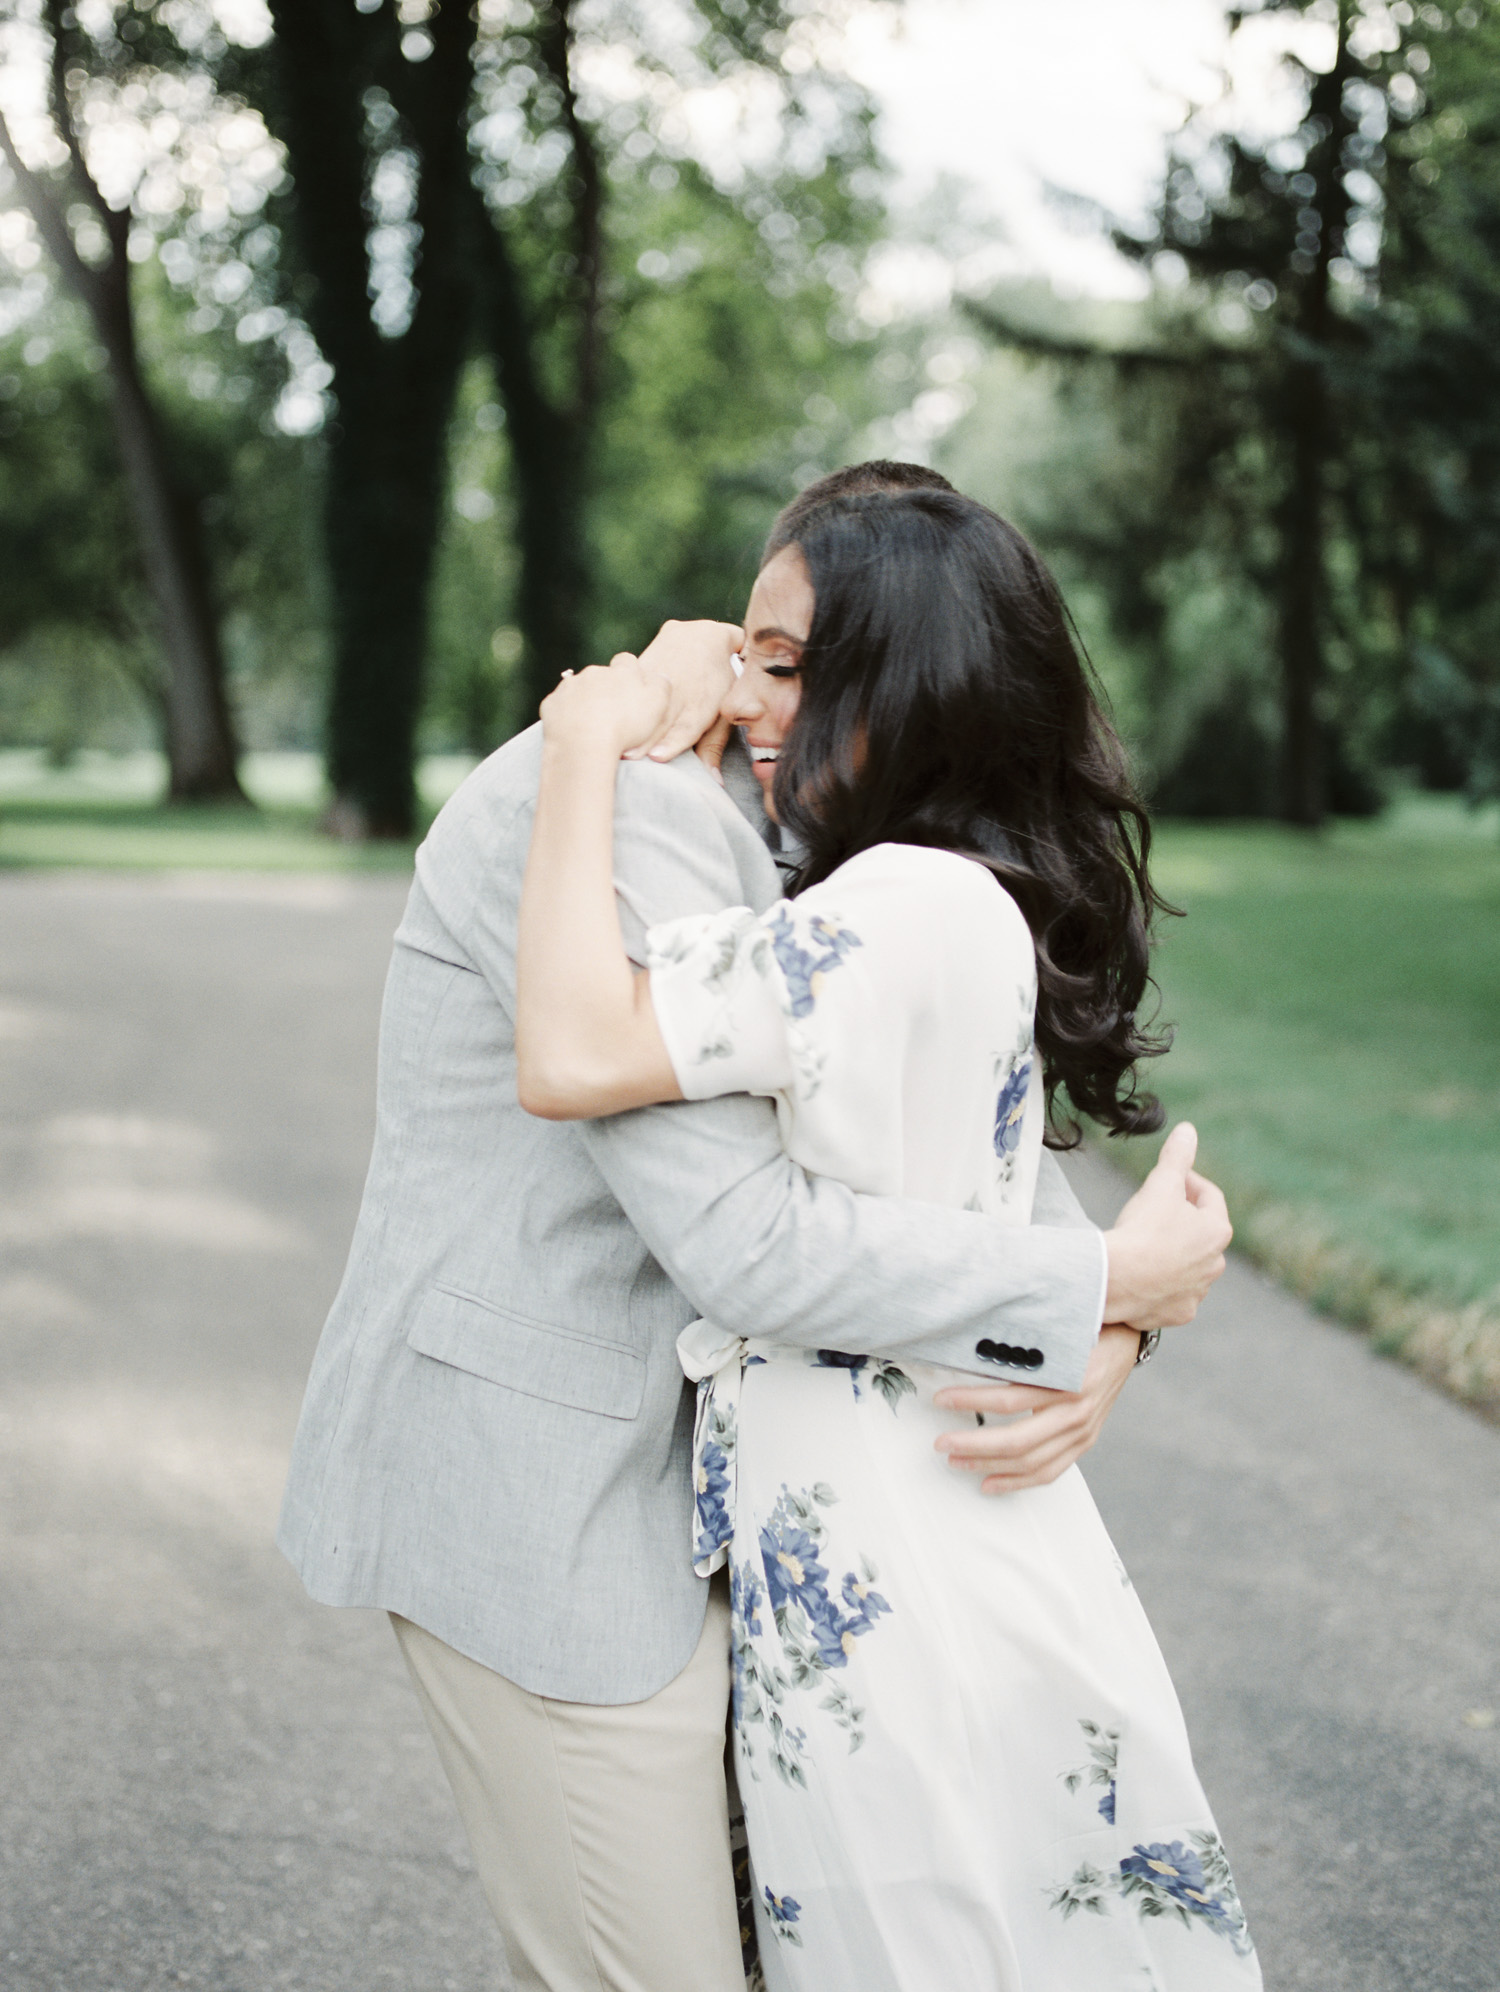 a laughing couple embraces during their engagement photos in Grosse Pointe Shores, Michigan